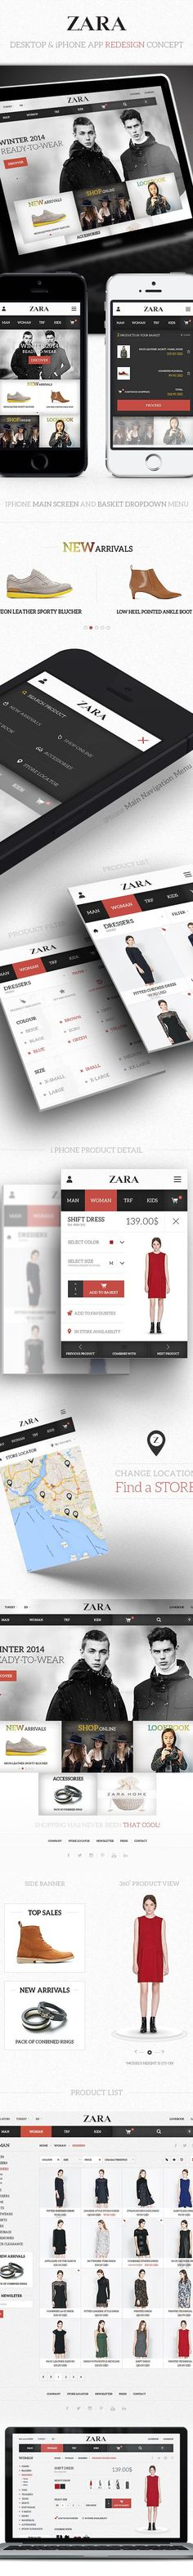 Zara / Desktop & iPhone App Redesign by Eray Demirsoy, via Behance Design Web, Web Design Gallery, Design Layouts, Creative Design, Mobile Application Design, Mobile Ui Design, Webdesign Inspiration, Web Inspiration, Ios